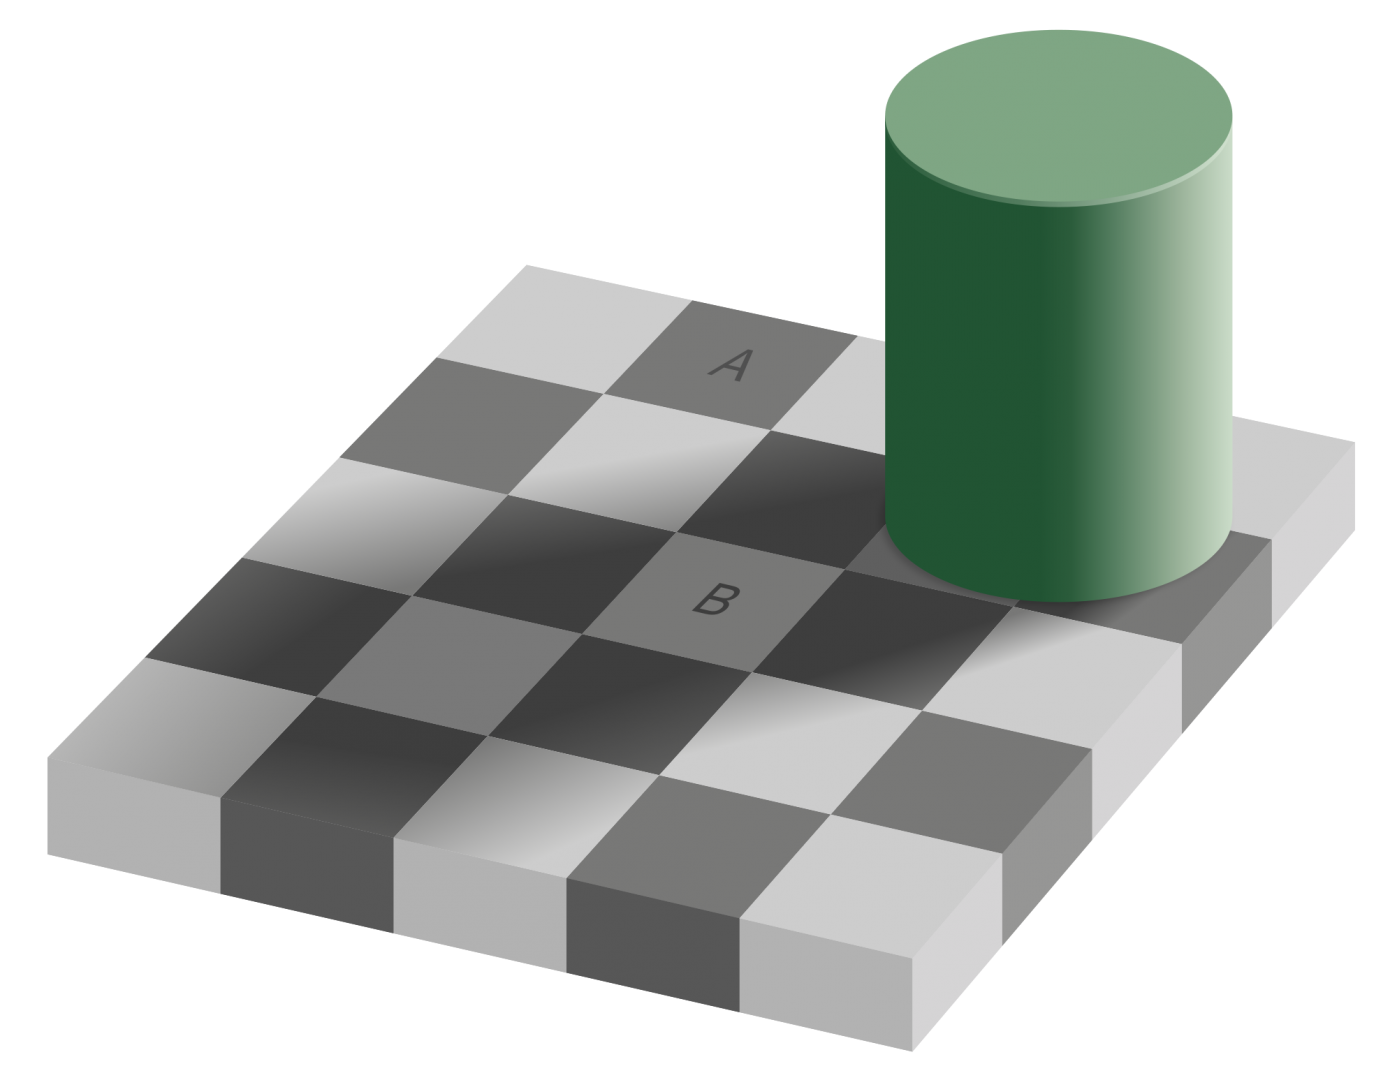 2000px-Grey_square_optical_illusion_svg.thumb.png.879f90069e48500c79c486ac1d198c2c.png